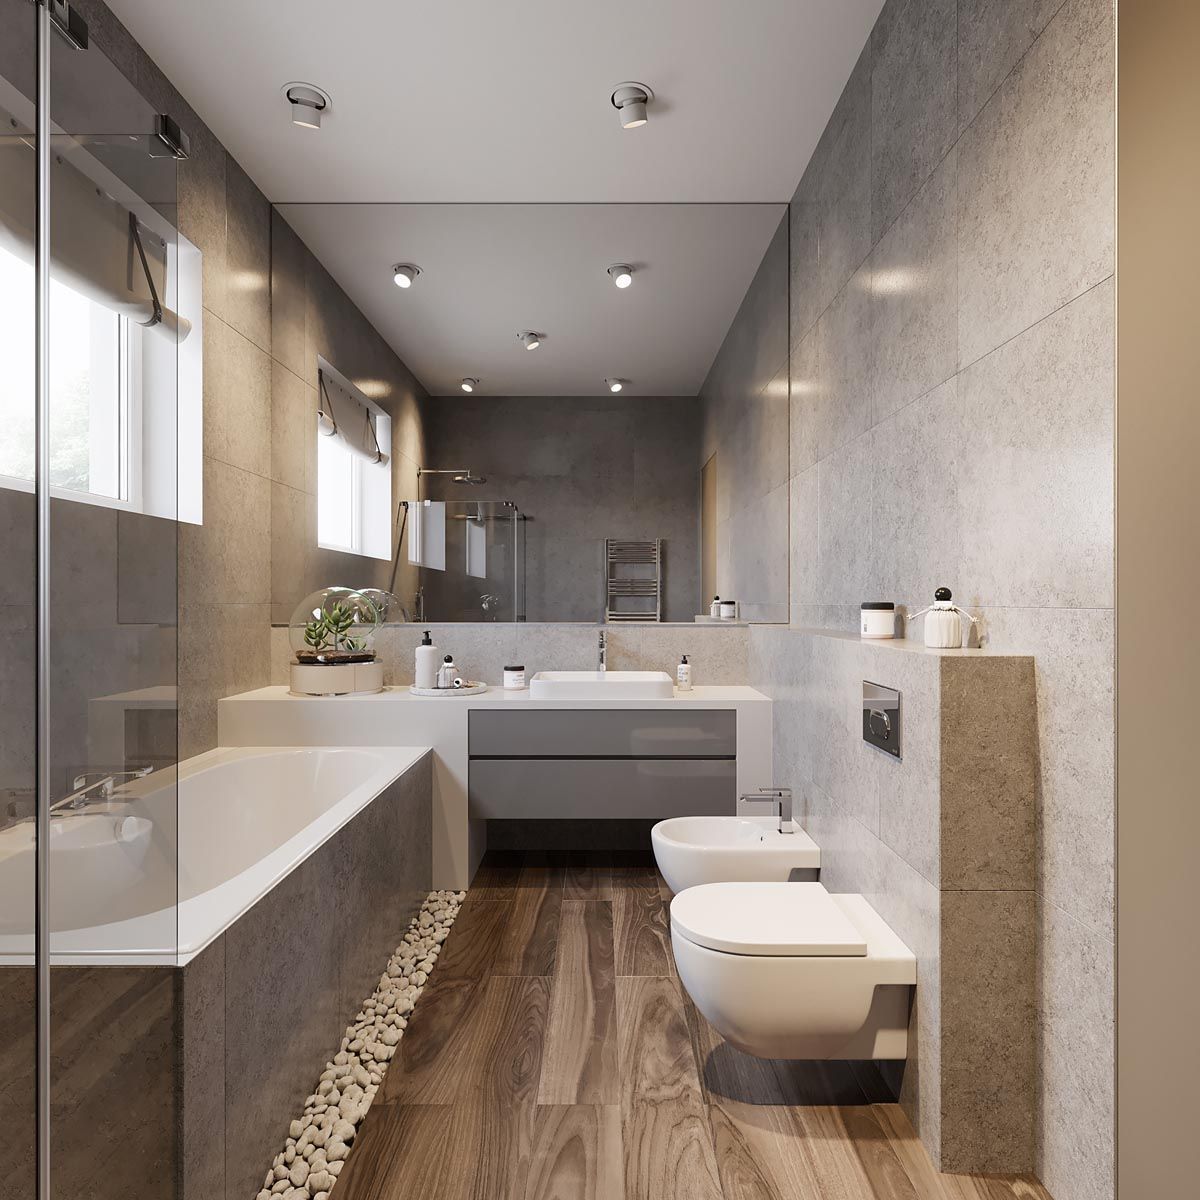 5 Contrasting Small Apartment Designs Small Apartment Design Bathroom Design Beautiful Bathroom Designs